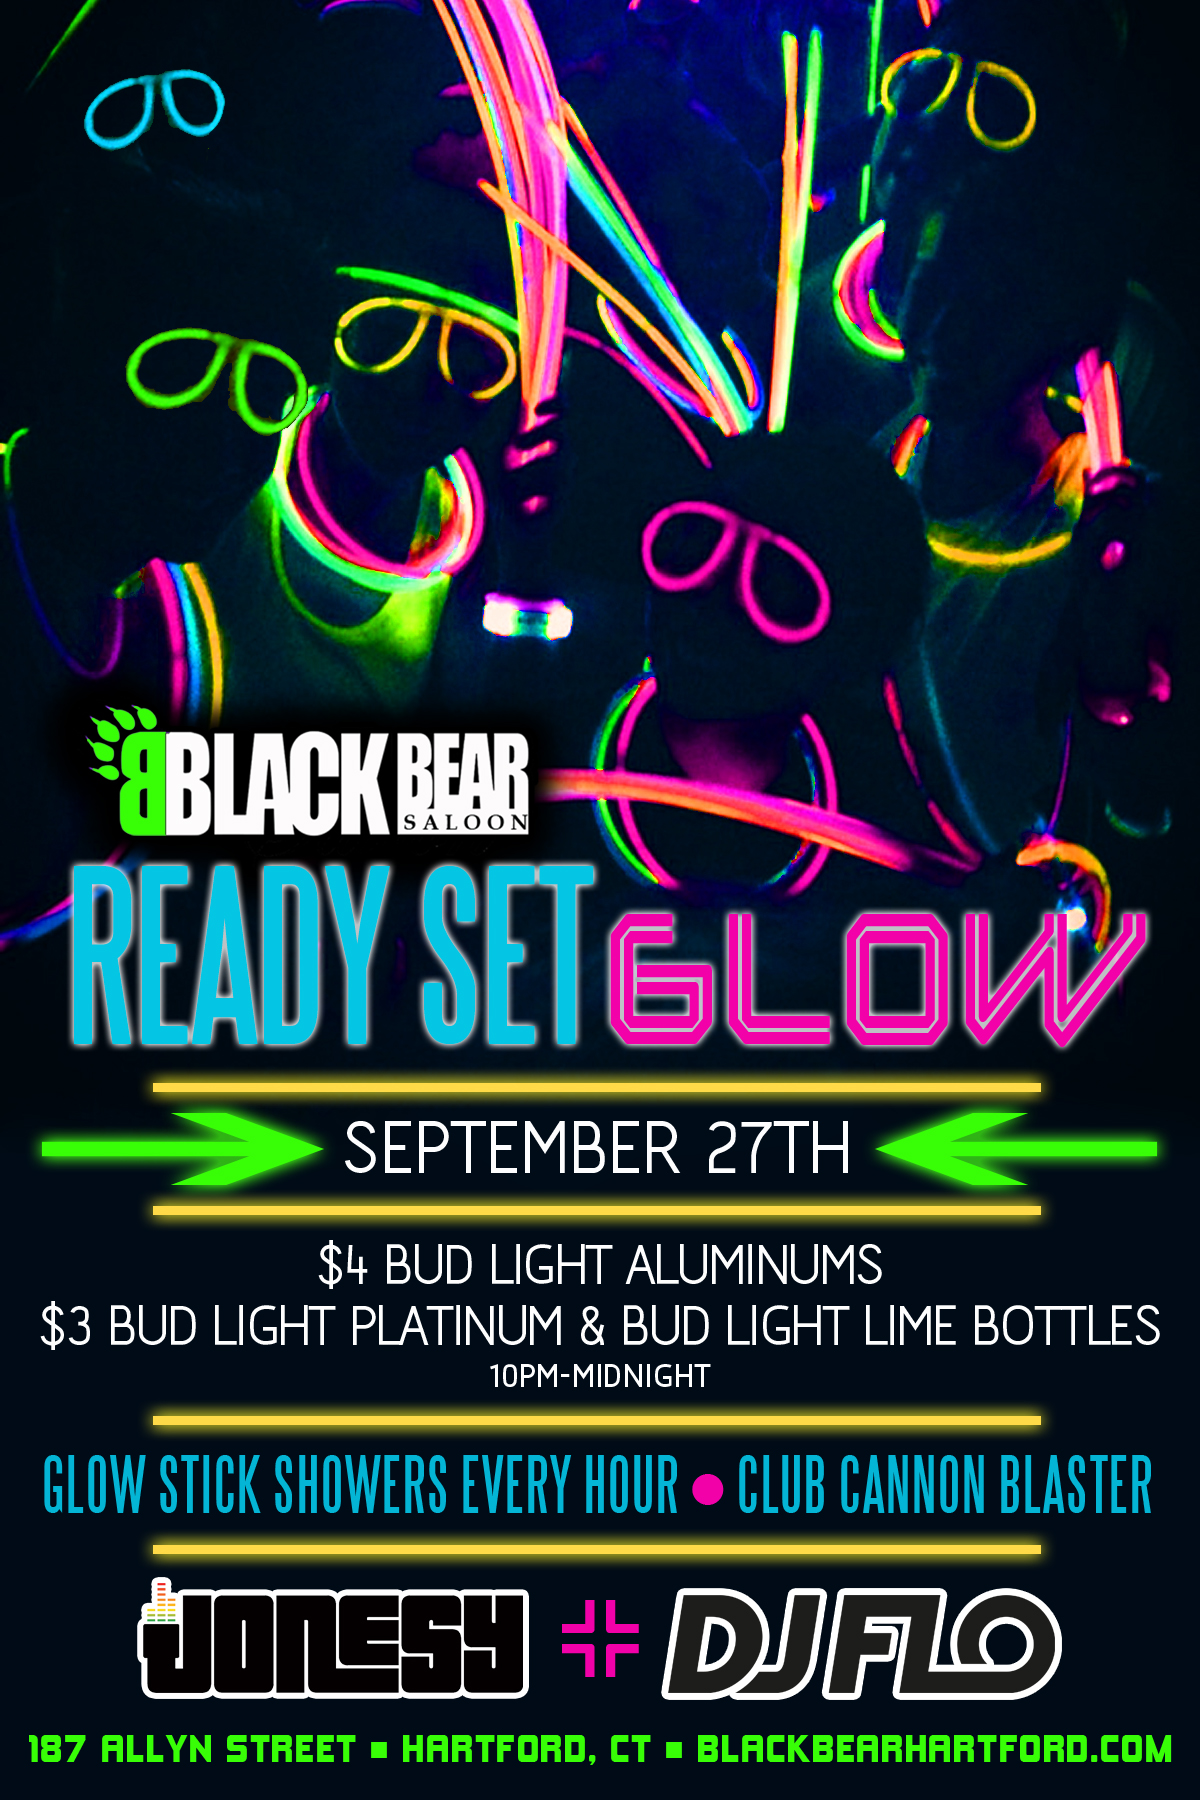 Join me +  FLO  &  Jamesy , Saturday, September 27th in the Capitol city of Hartford CT for the highly anticipated Ready Set Glow Party at   Black Bear Saloon  . $4 Bud Light Aluminum Bottles, $3 Bud Light Platinum & Bud Light Lime Bottles 10PM - Midnight.  Glow Stick Showers Every Hour + The Club Cannon Blaster.